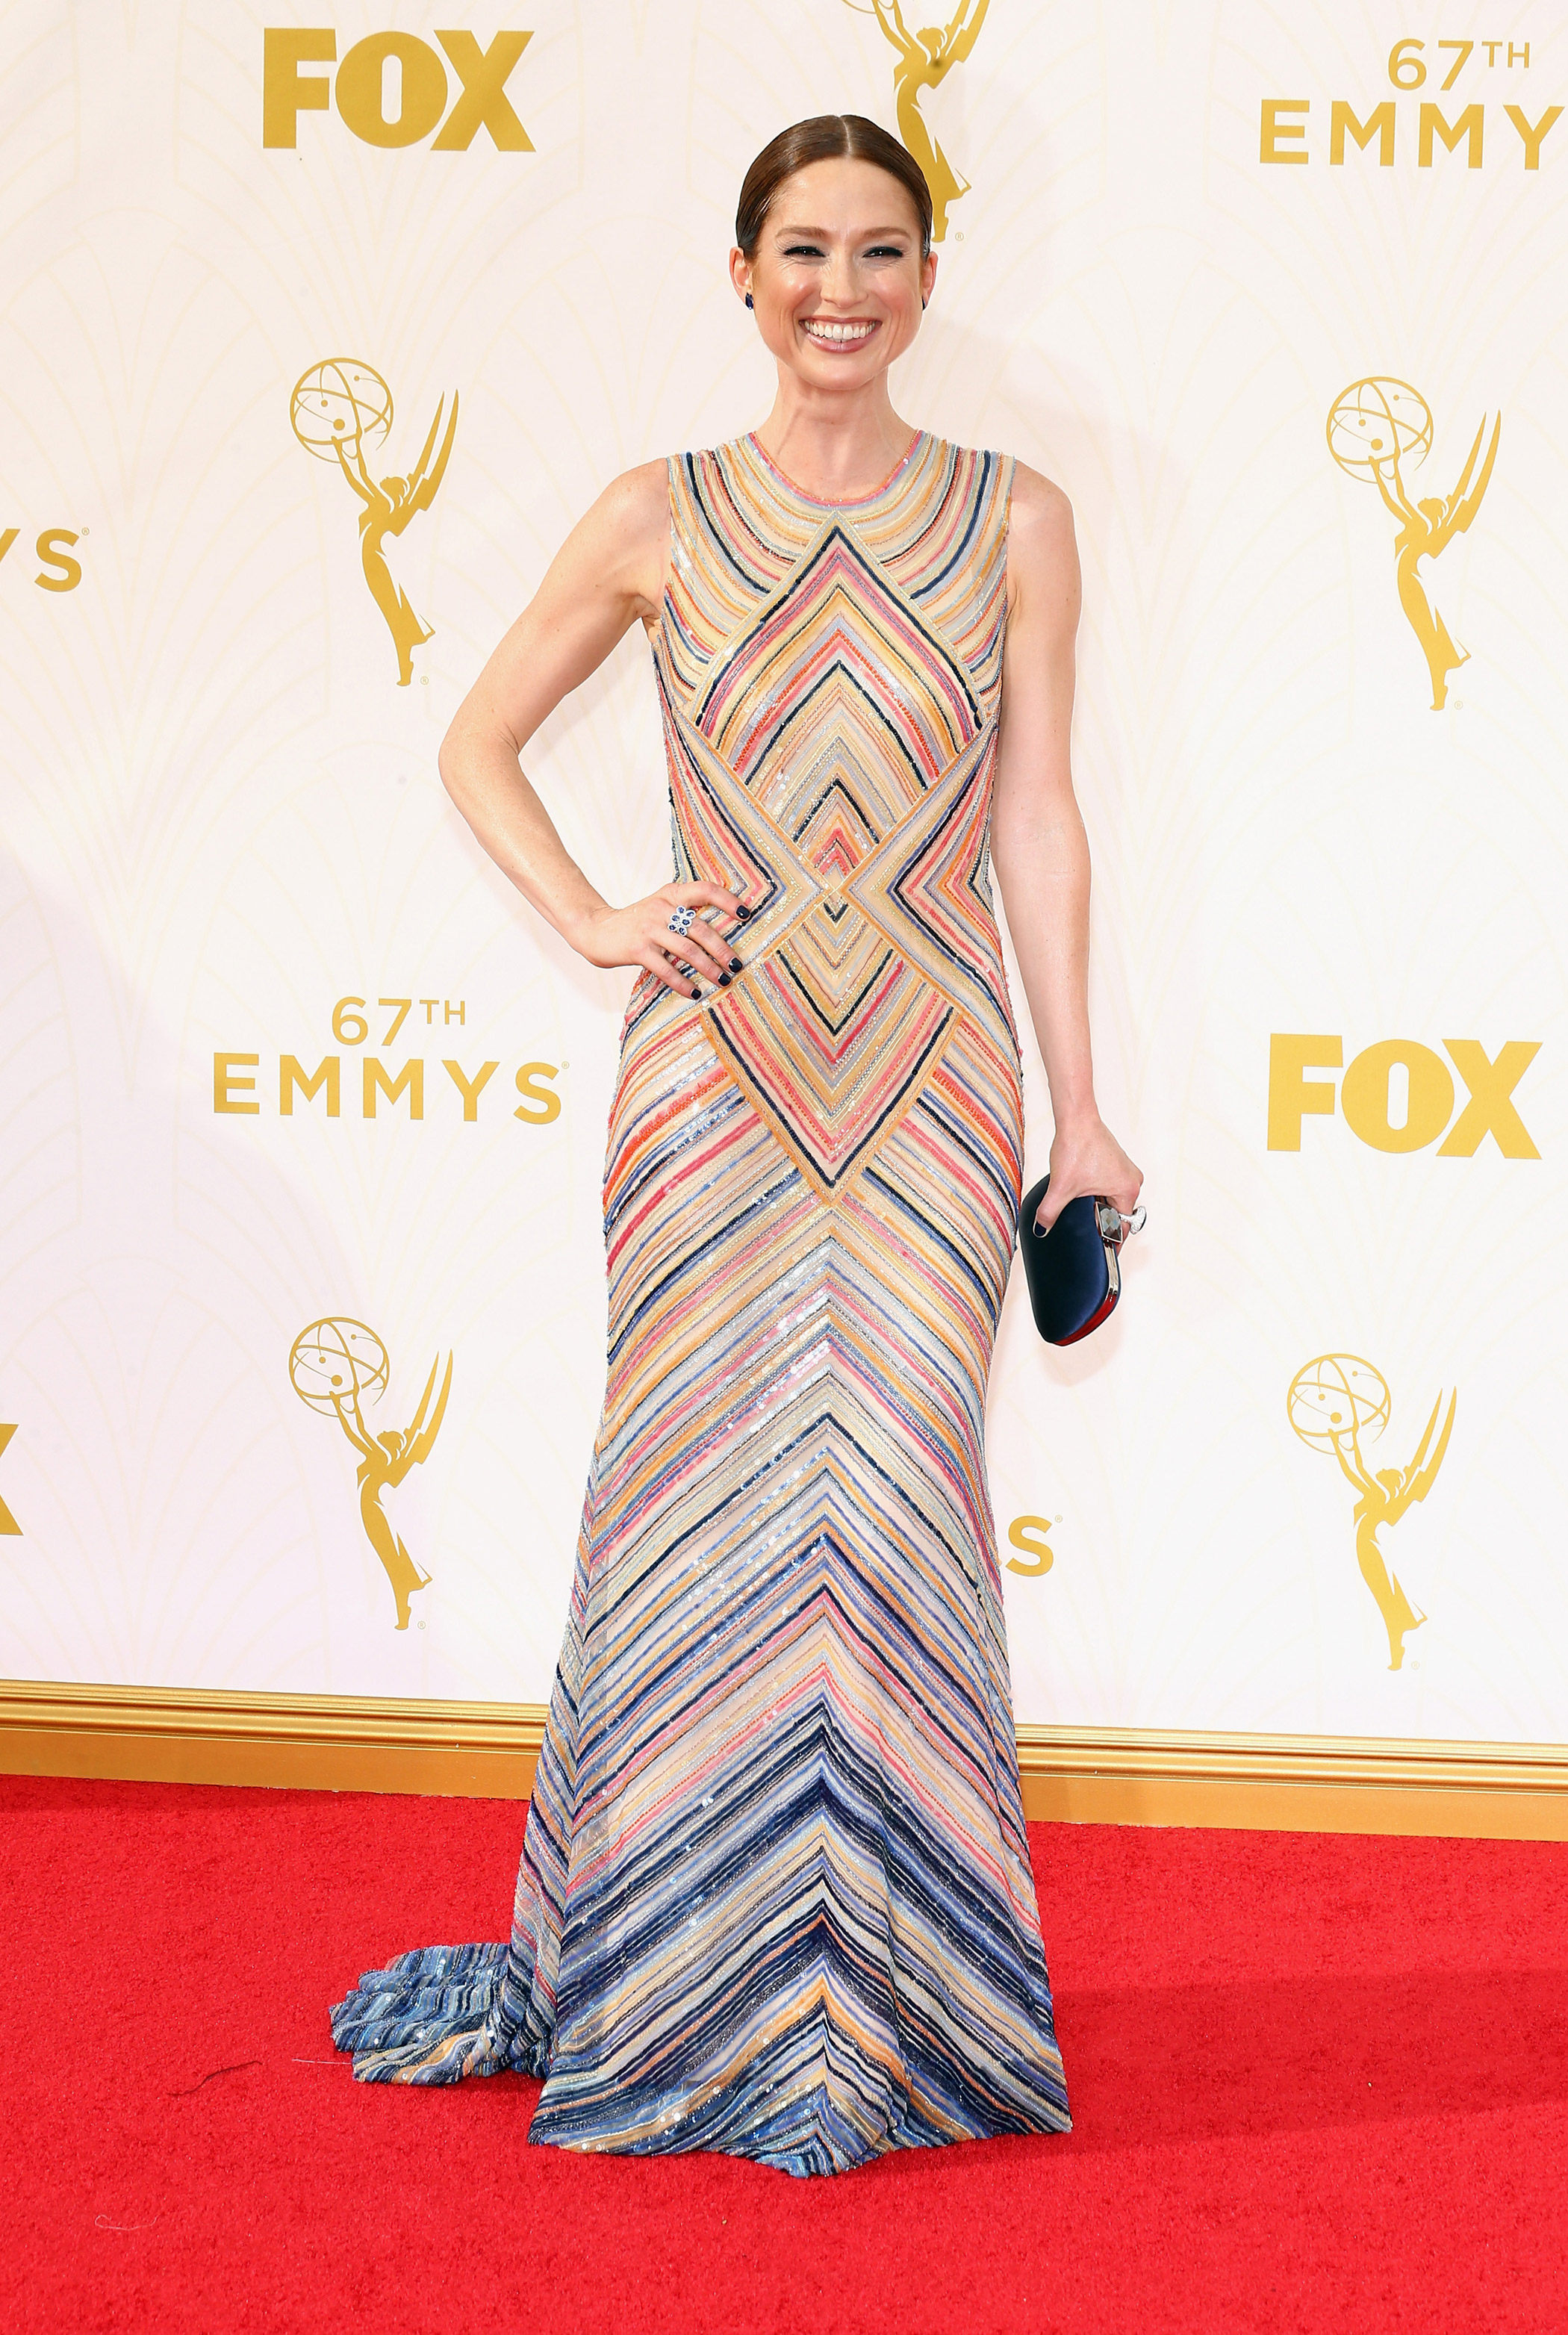 Ellie Kemper at the 67th Emmy Award on Sept. 20, 2015 in Los Angeles.